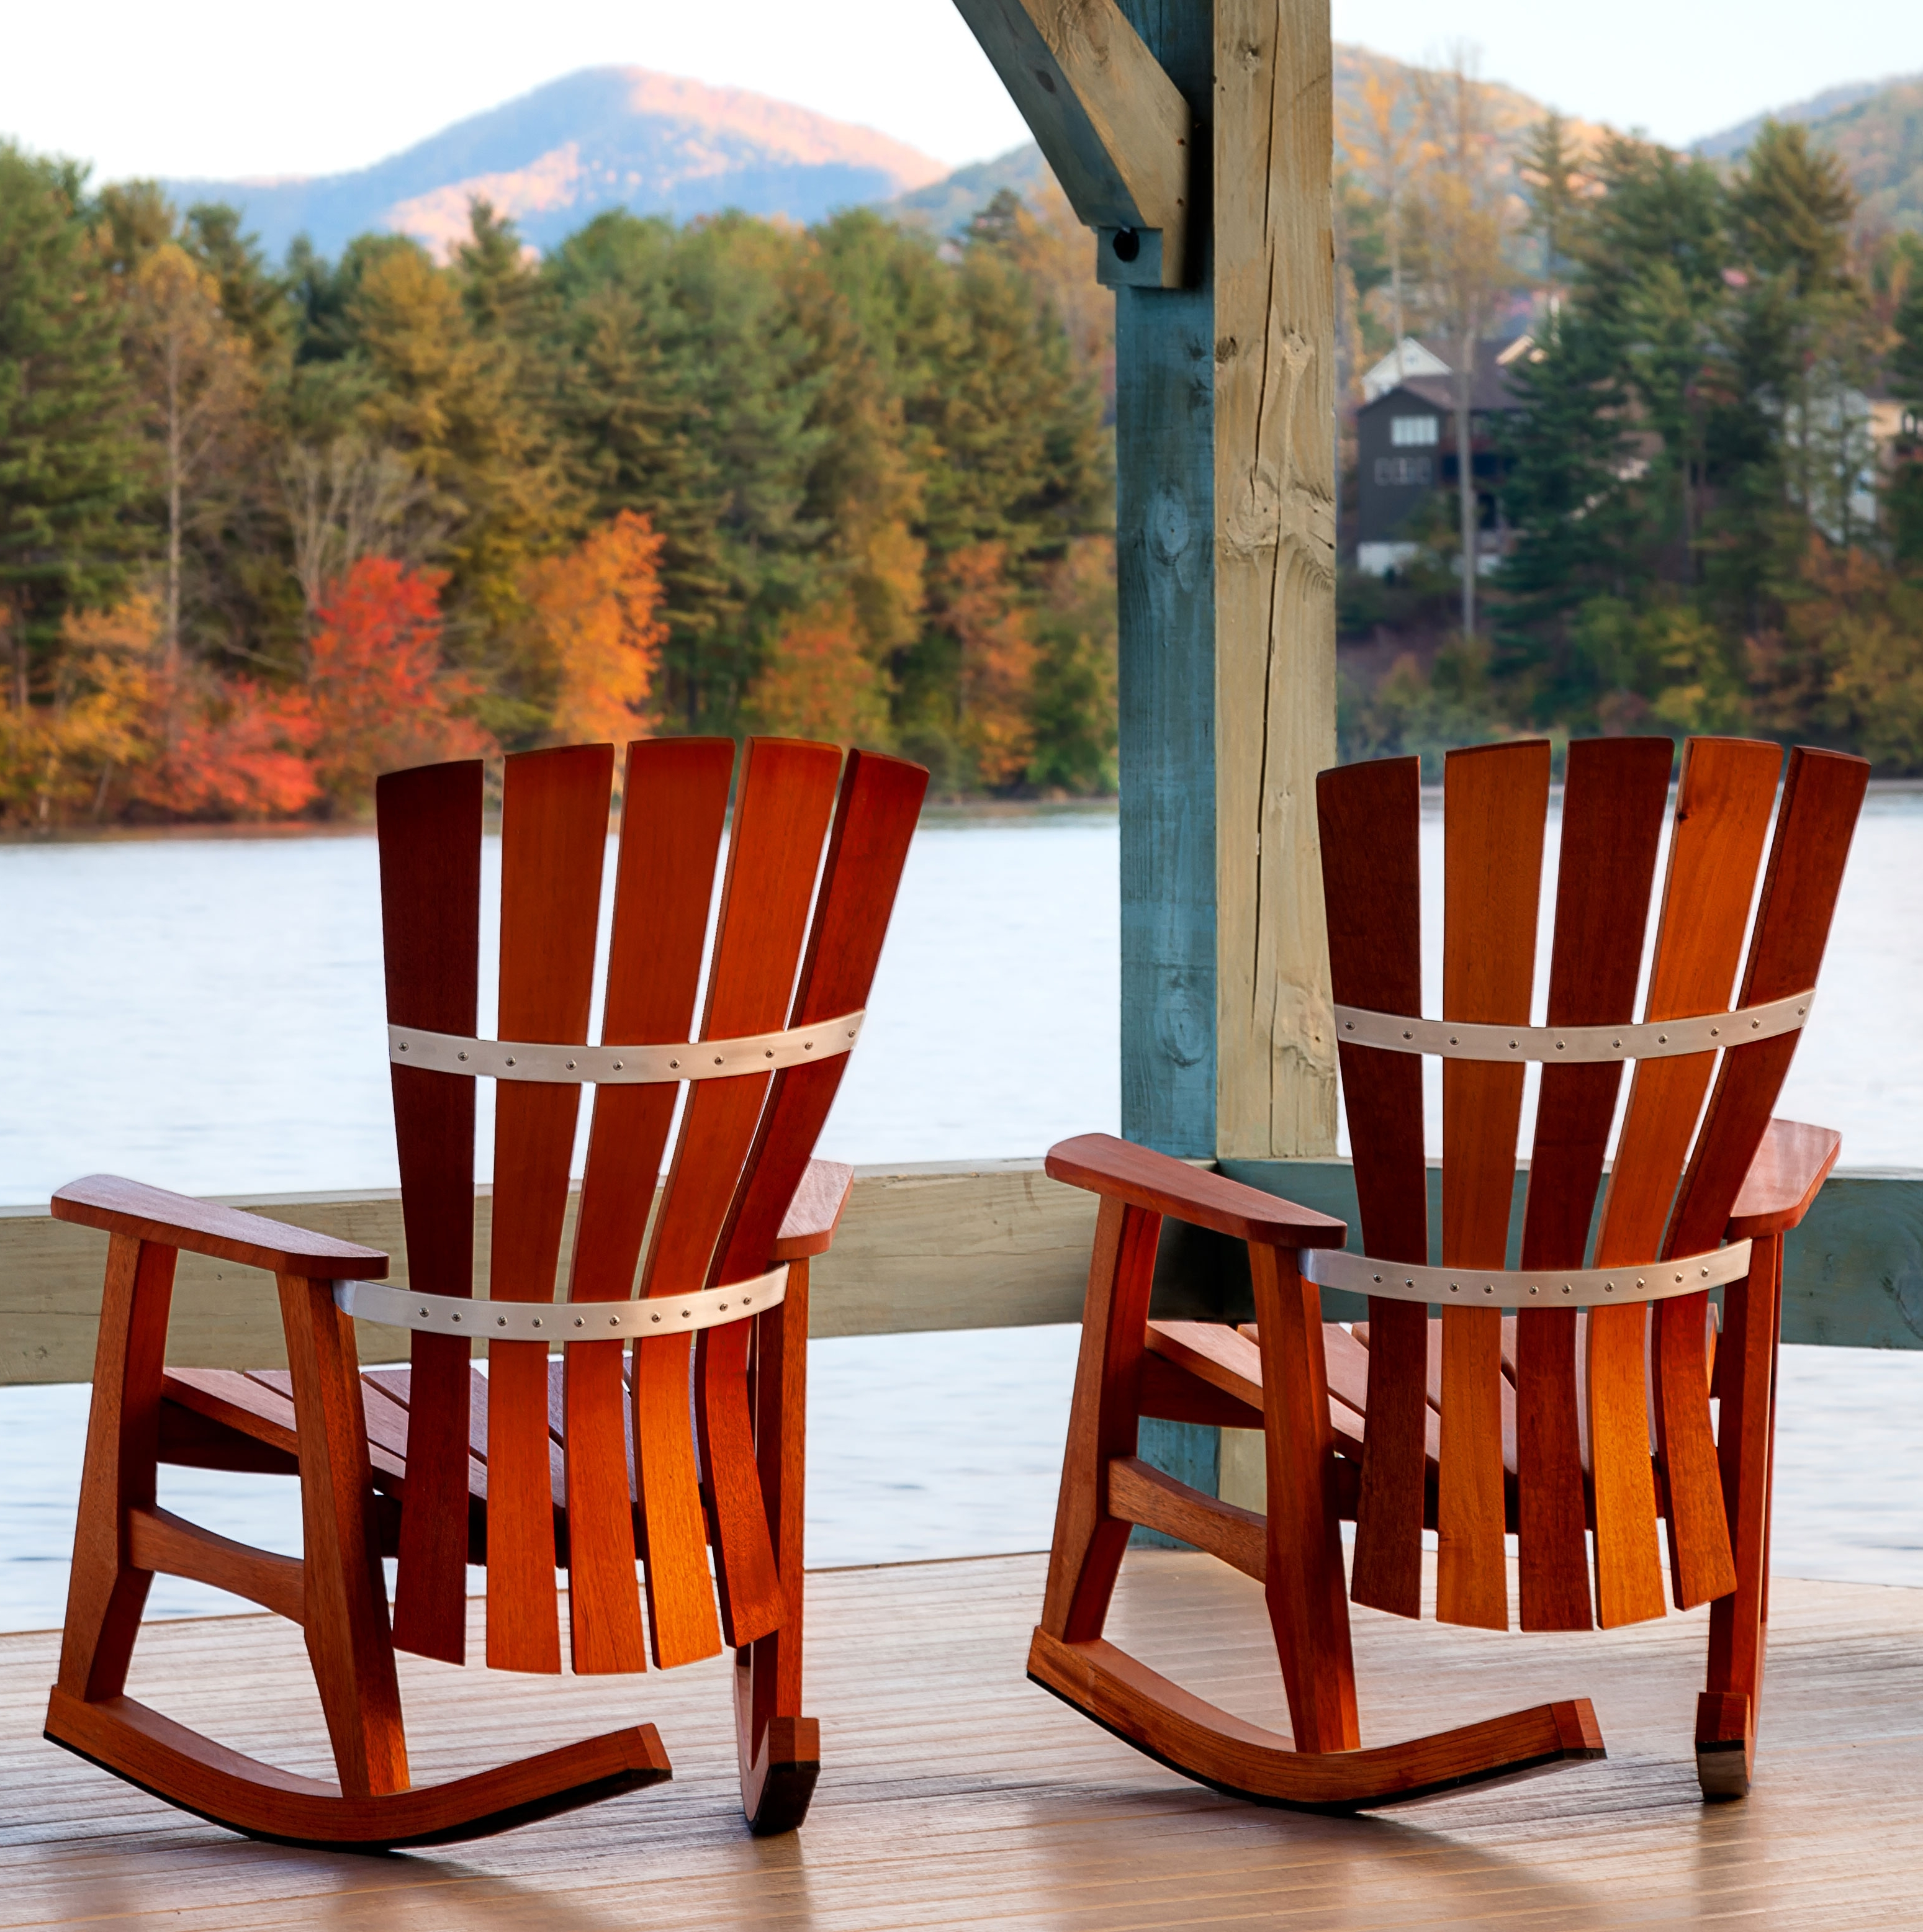 Wooden Patio Rocking Chairs Within Most Current Folding Wooden Outdoor Rocking Chair – Chair Design Ideas (View 15 of 15)